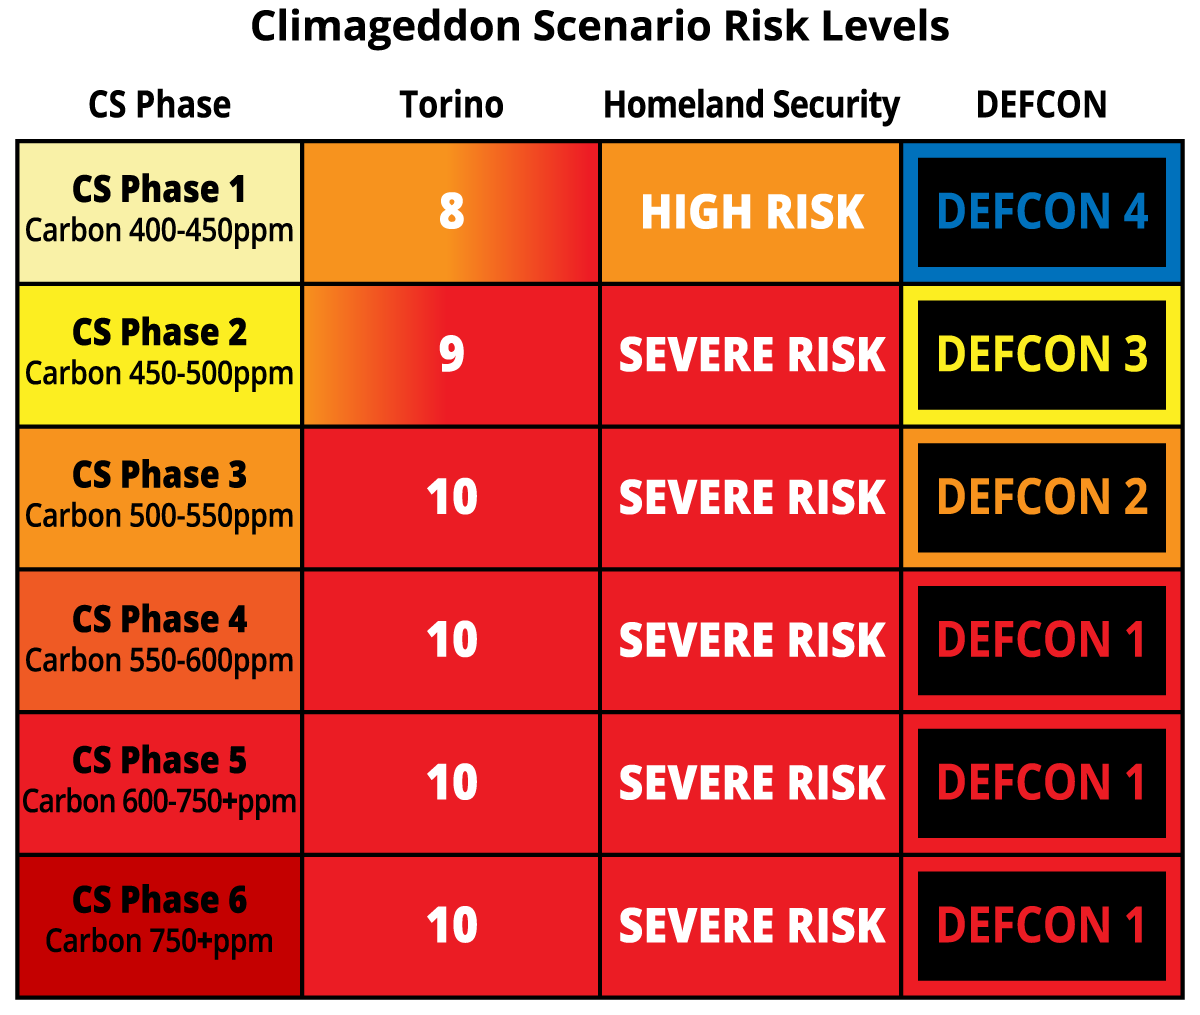 Chapter_6_Climageddon_Scenario_Risk_Levels.png